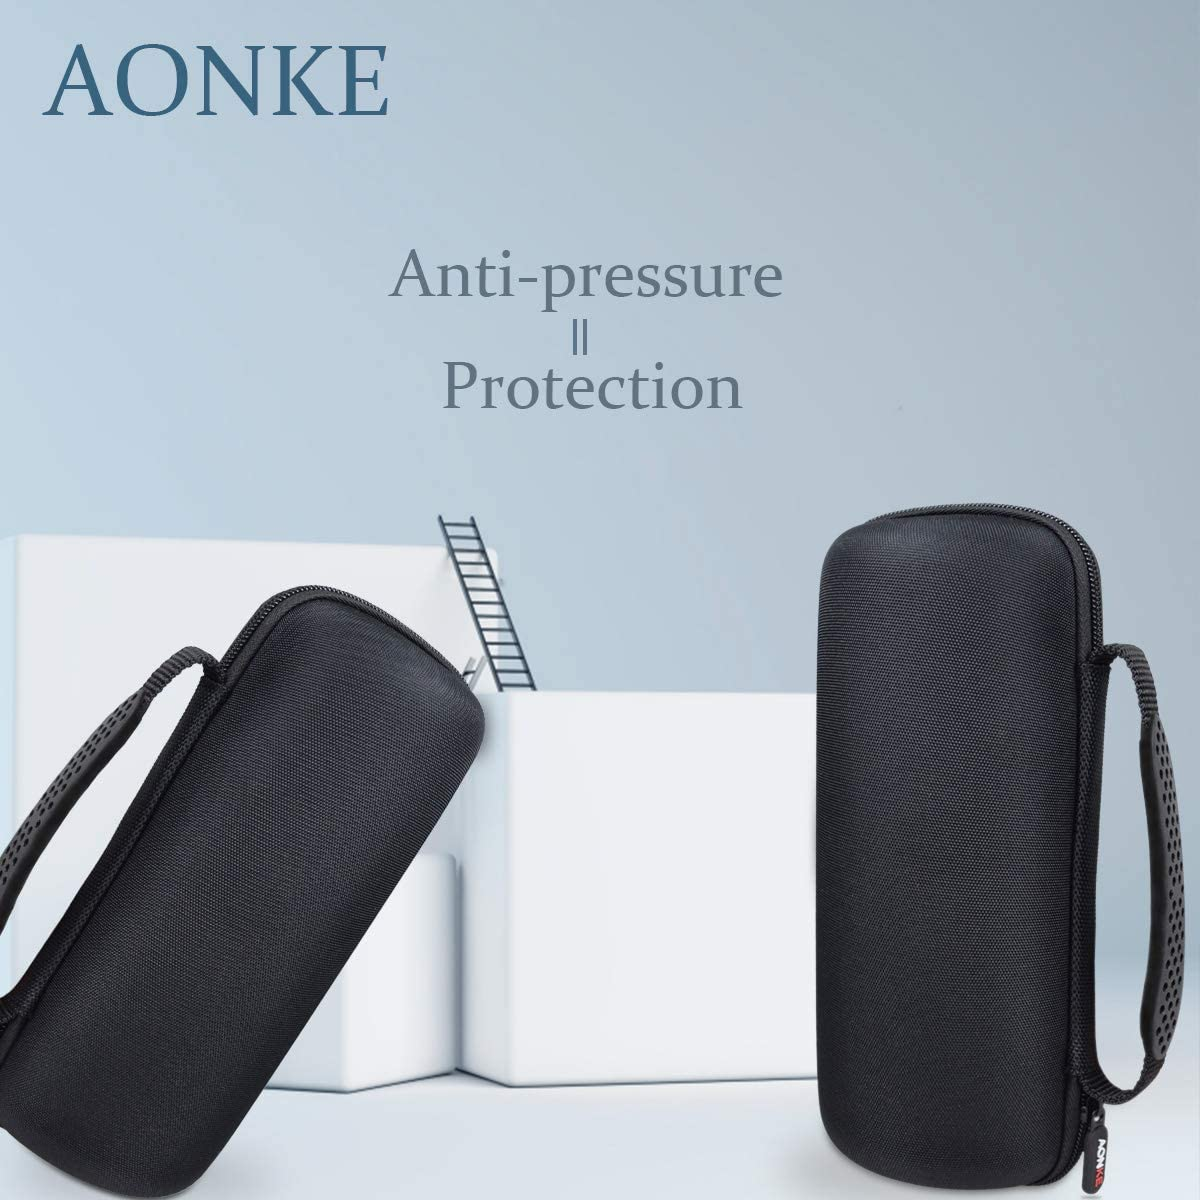 Hard Travel Case Bag for Anker Soundcore Flare Portable Bluetooth 360/° Speaker by AONKE